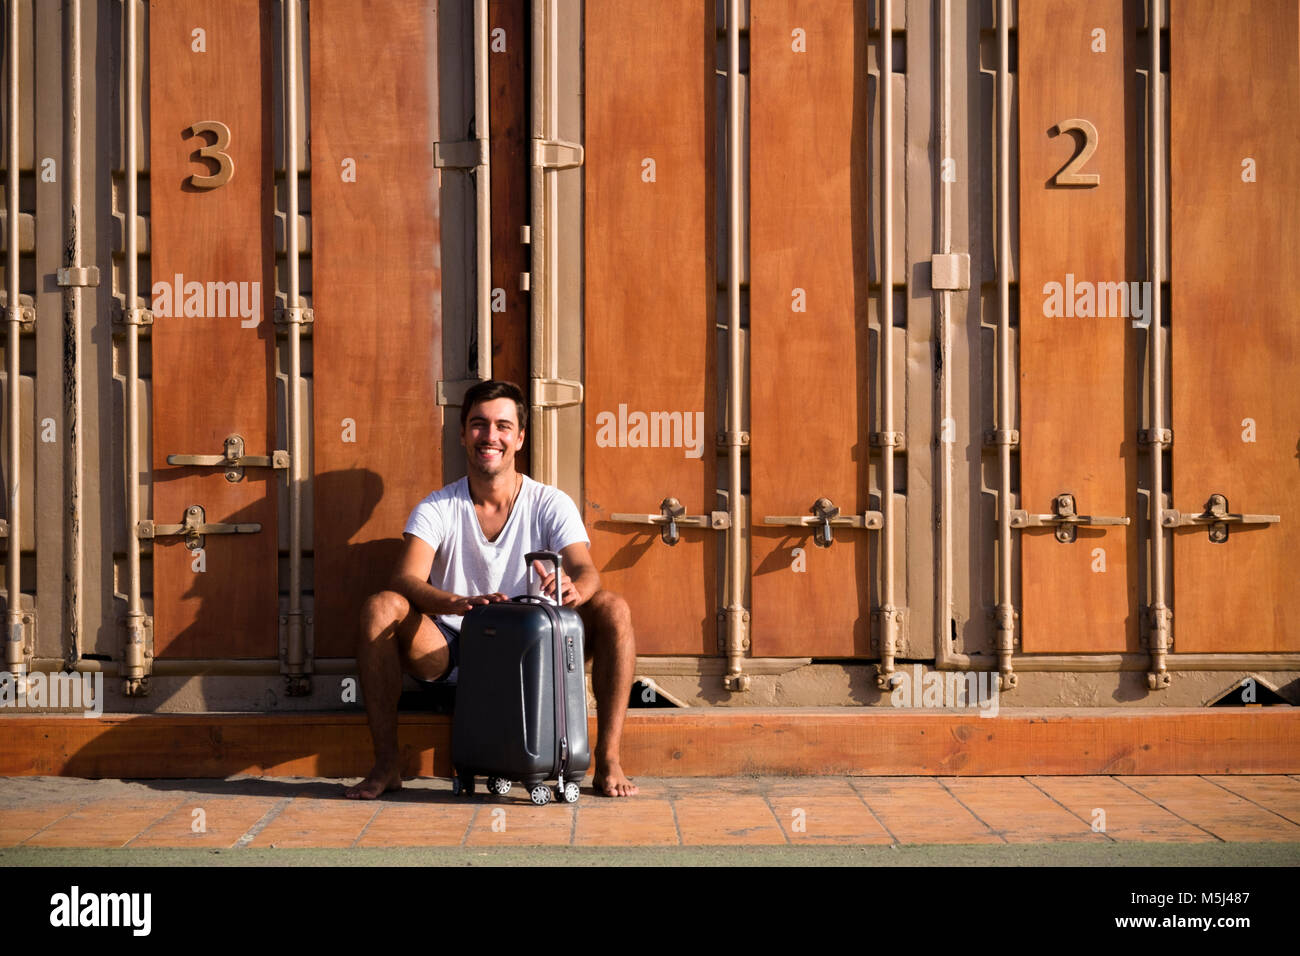 Happy man with rolling suitcase sitting in front of cubicle - Stock Image